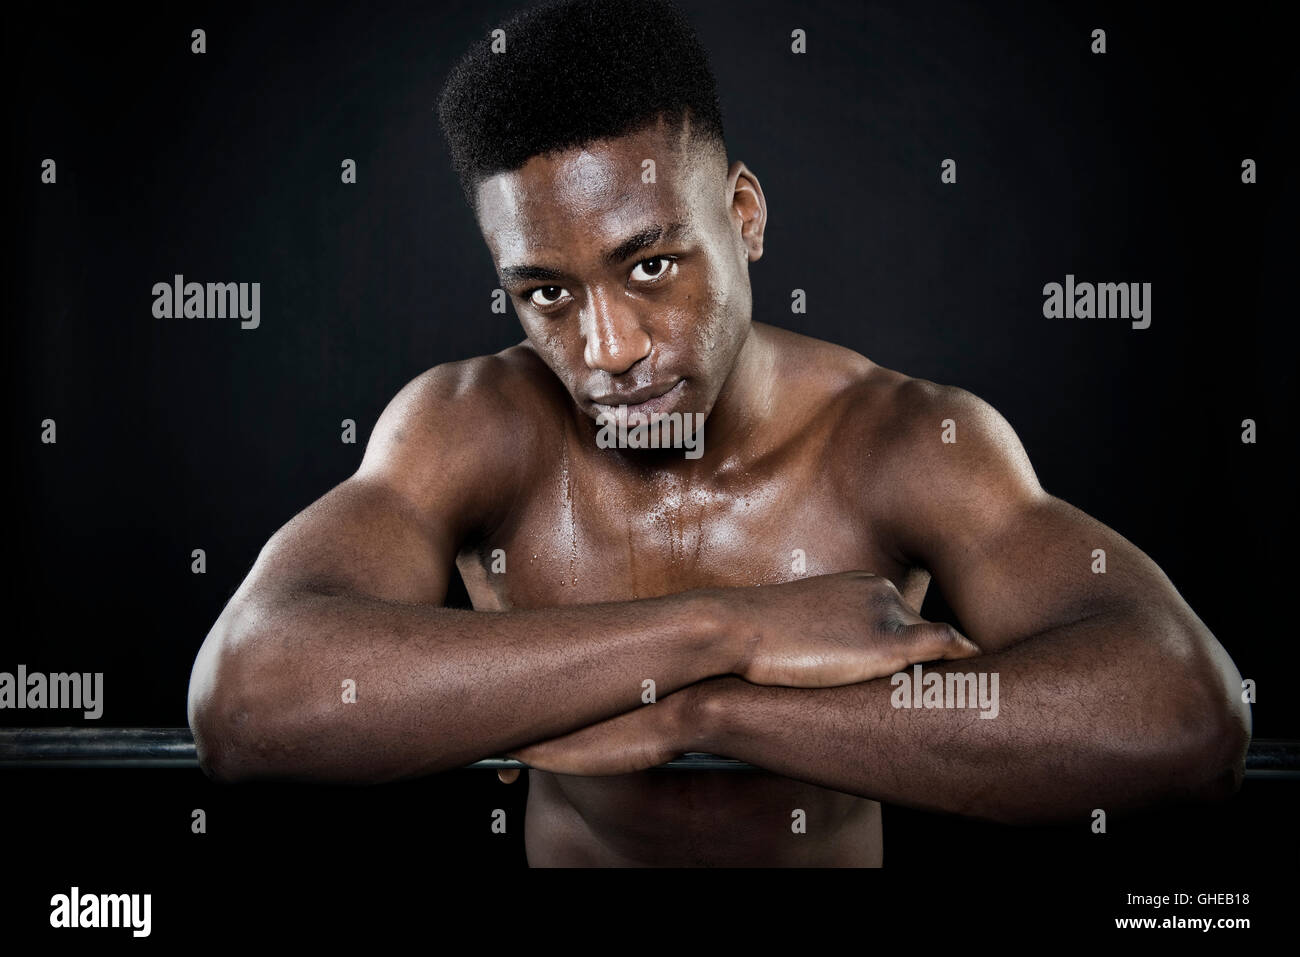 Sportsman athlete sweating wet face portrait after exercise arms folded leaning on bar intense look isolated black - Stock Image